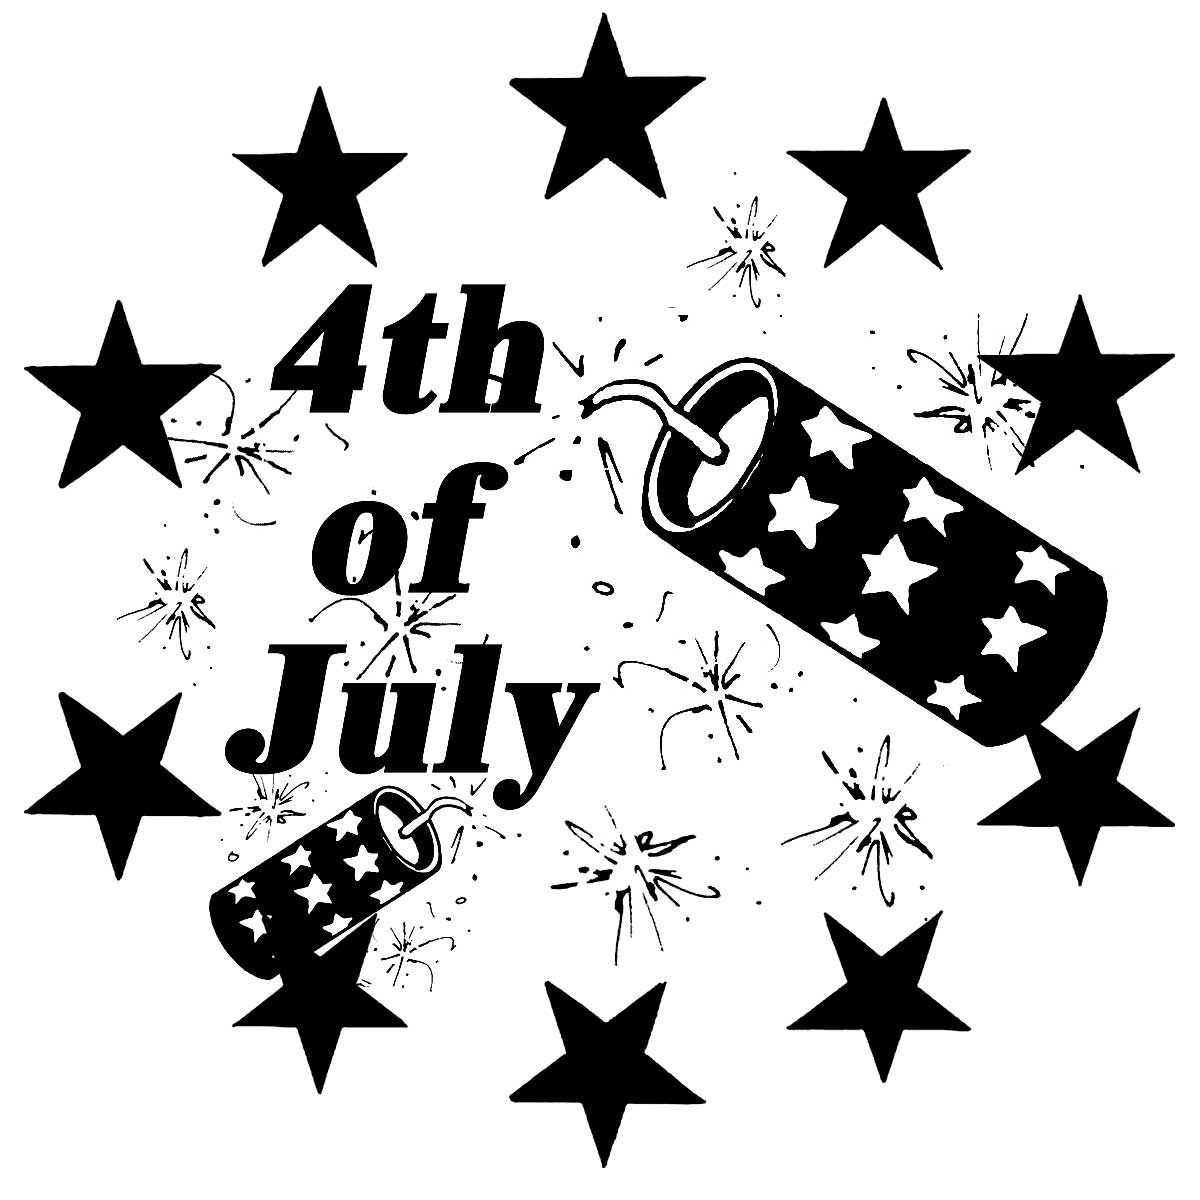 4th Of July Firecracker Public Domain Clip Art Photos And